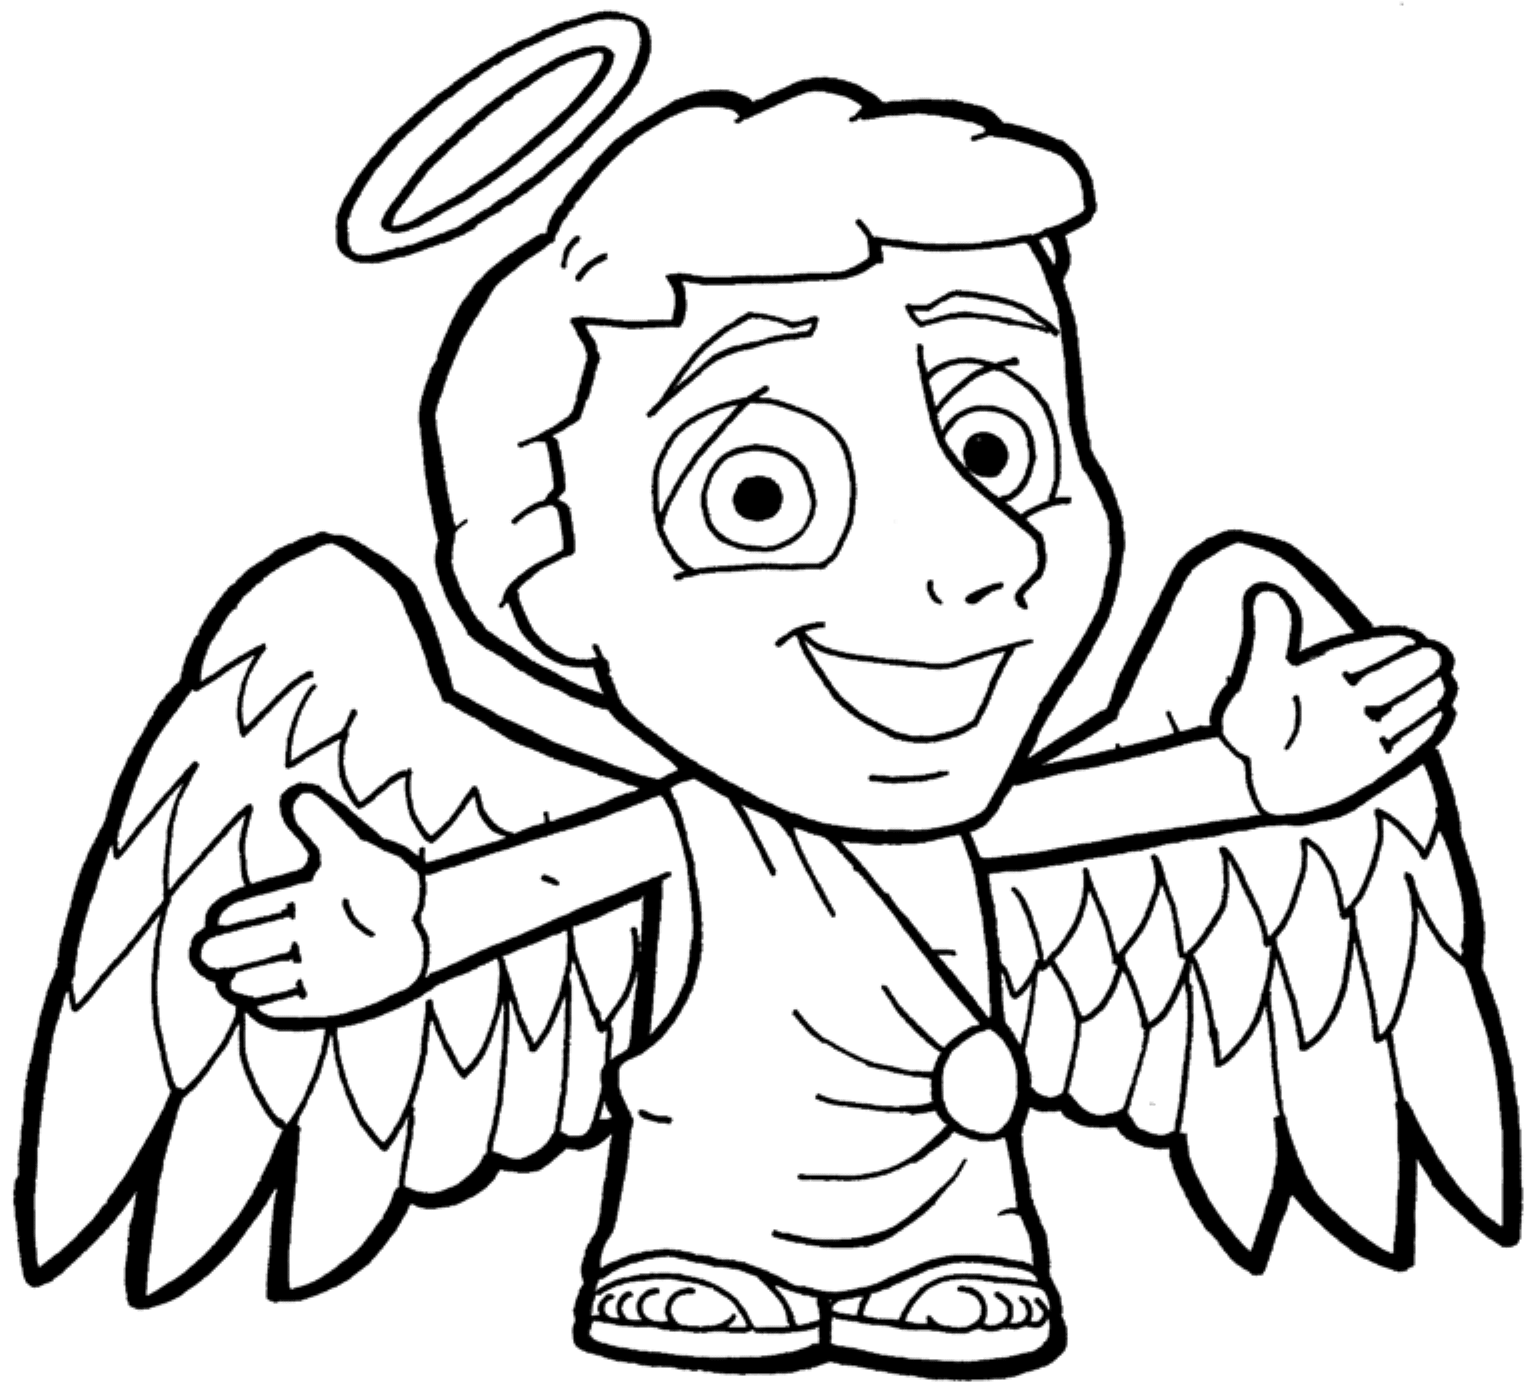 Mini Angel BW-1